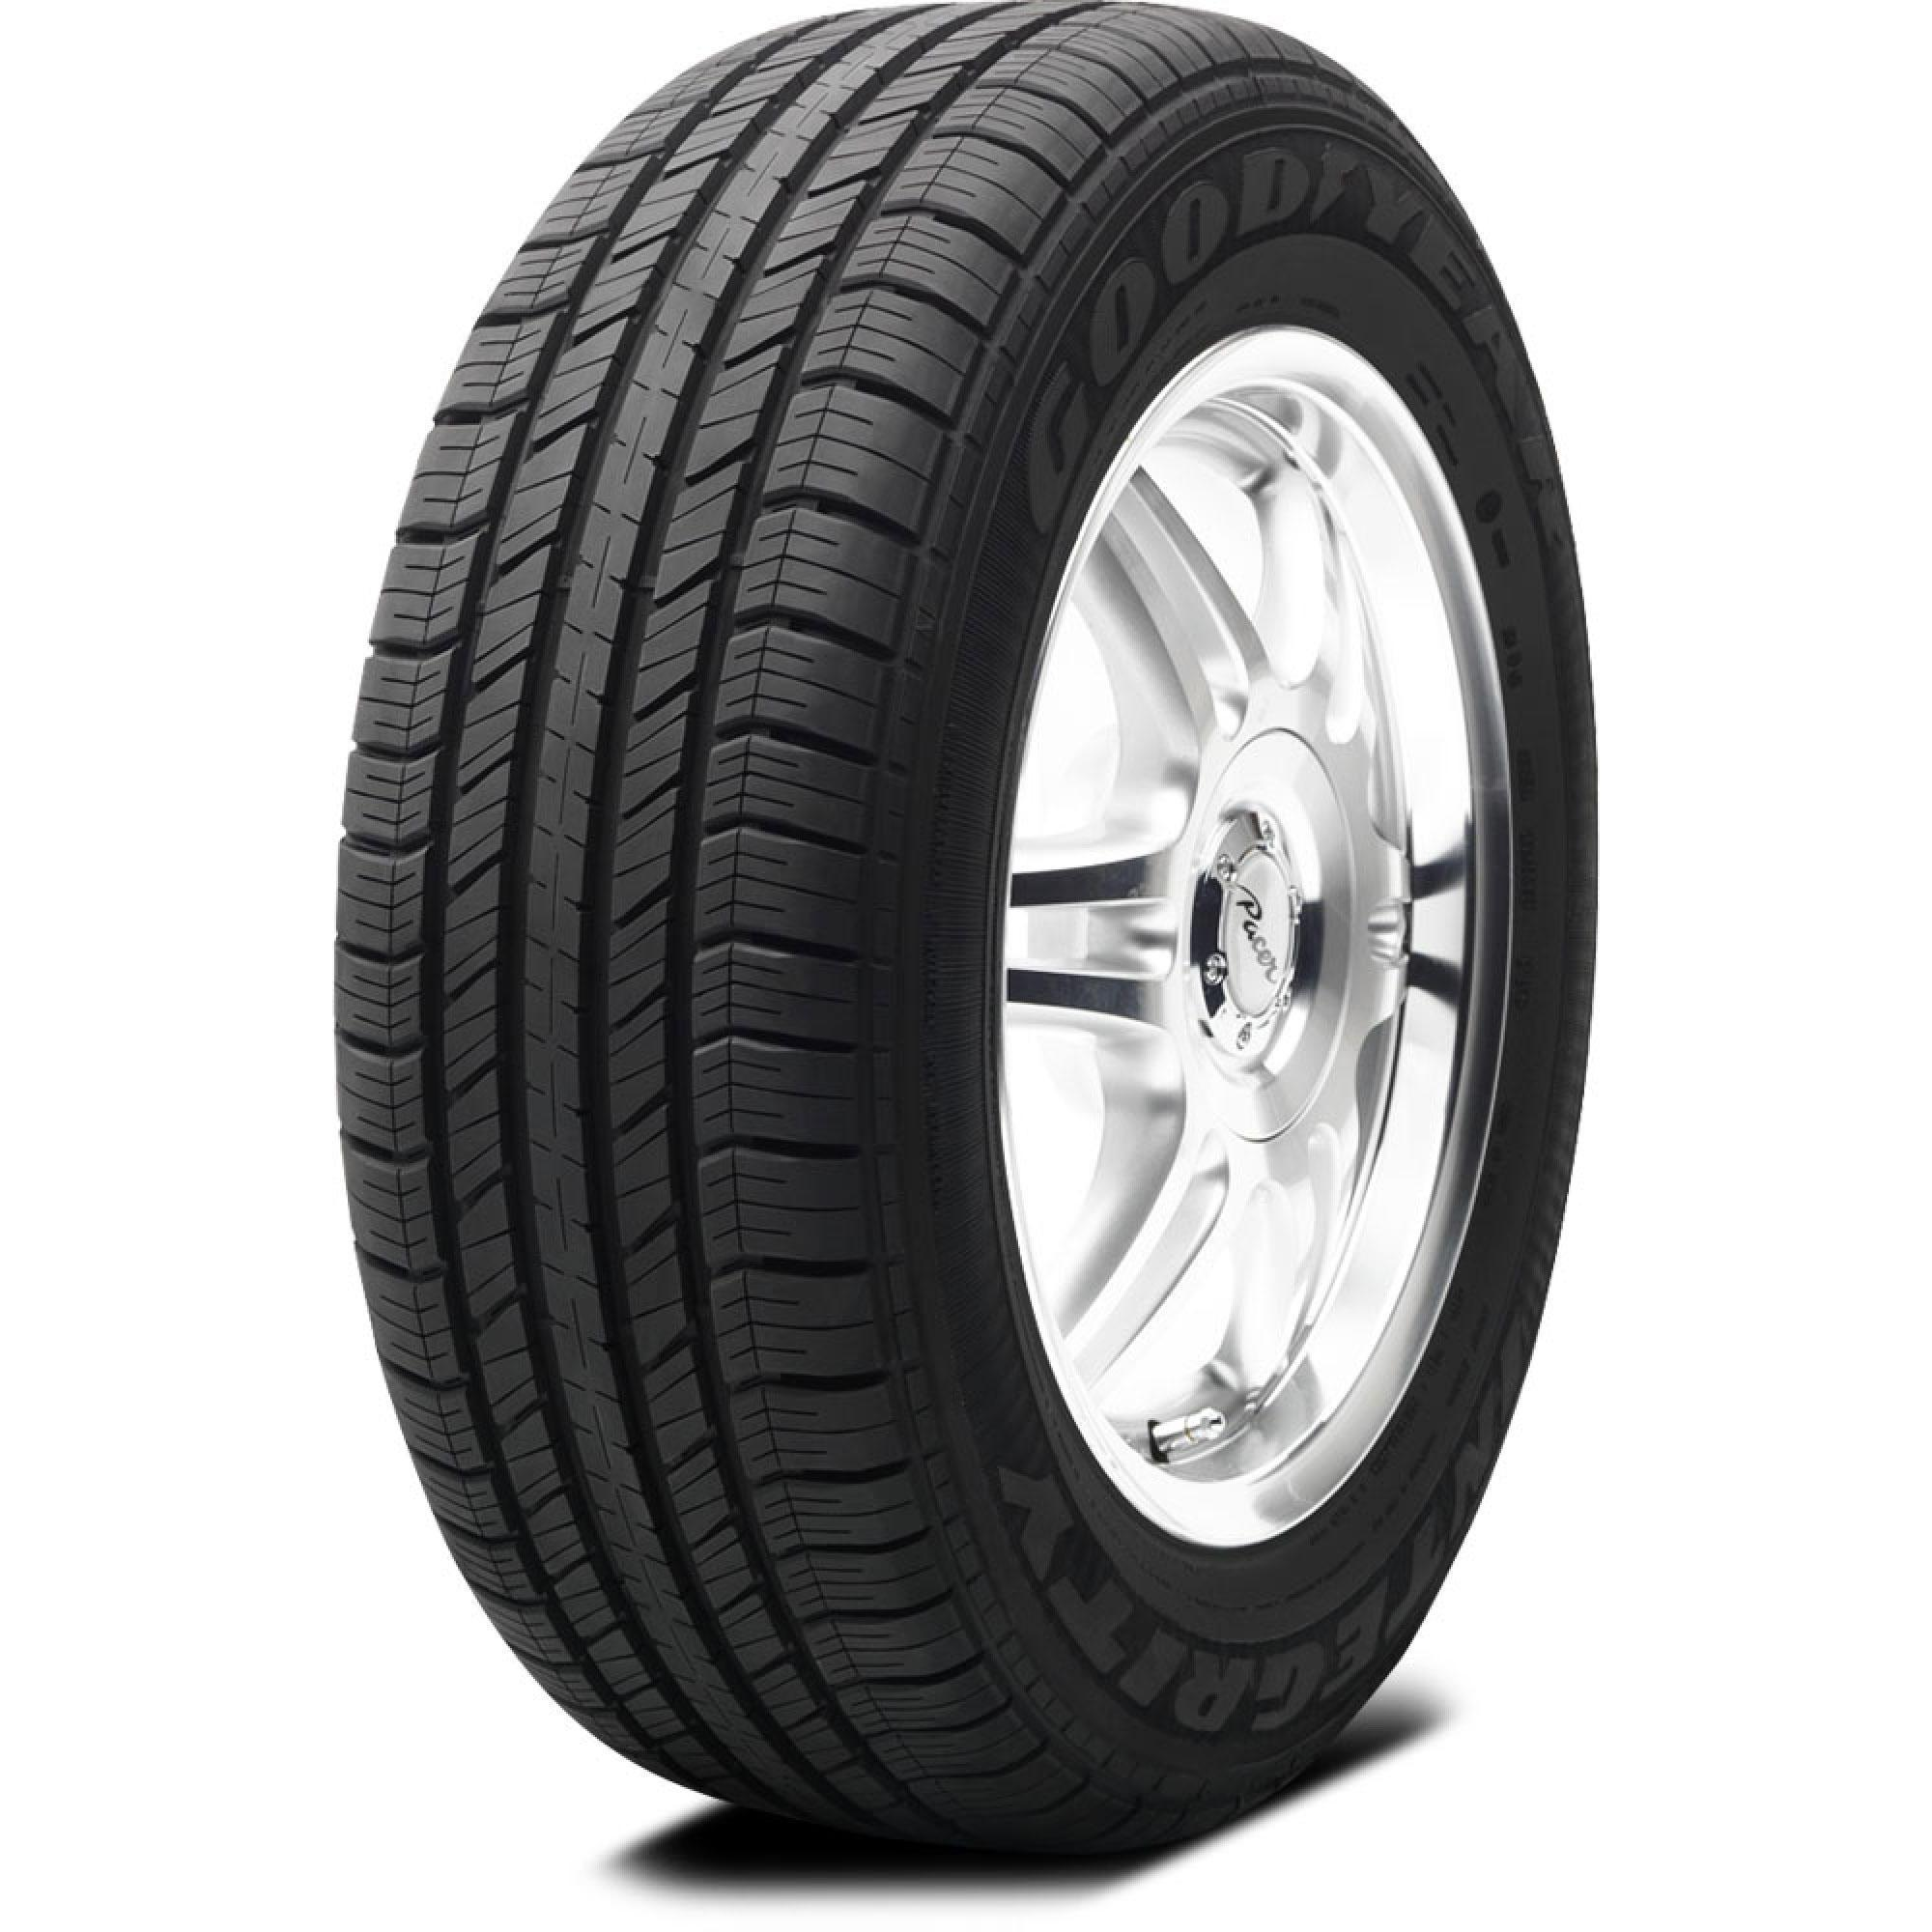 Goodyear Integrity | TireBuyer